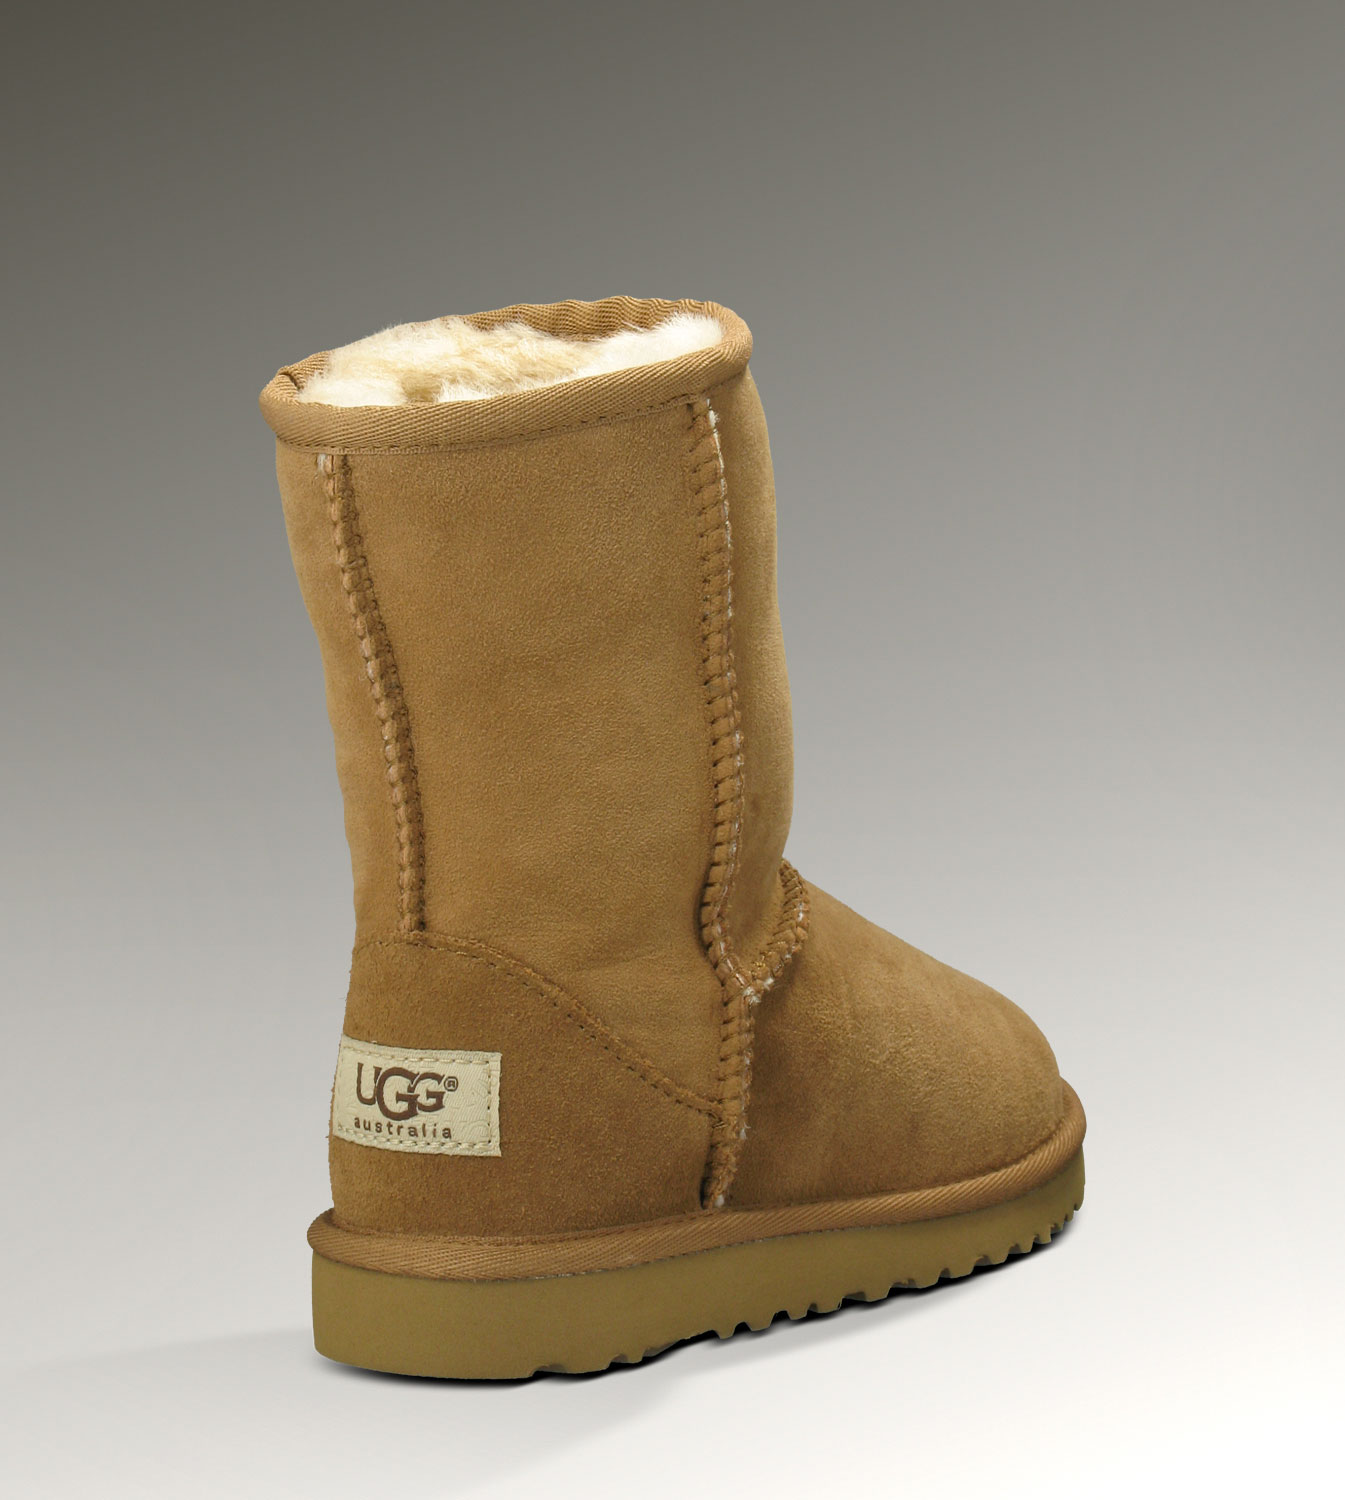 UGG Classic Short 5251 Chestnut Boots